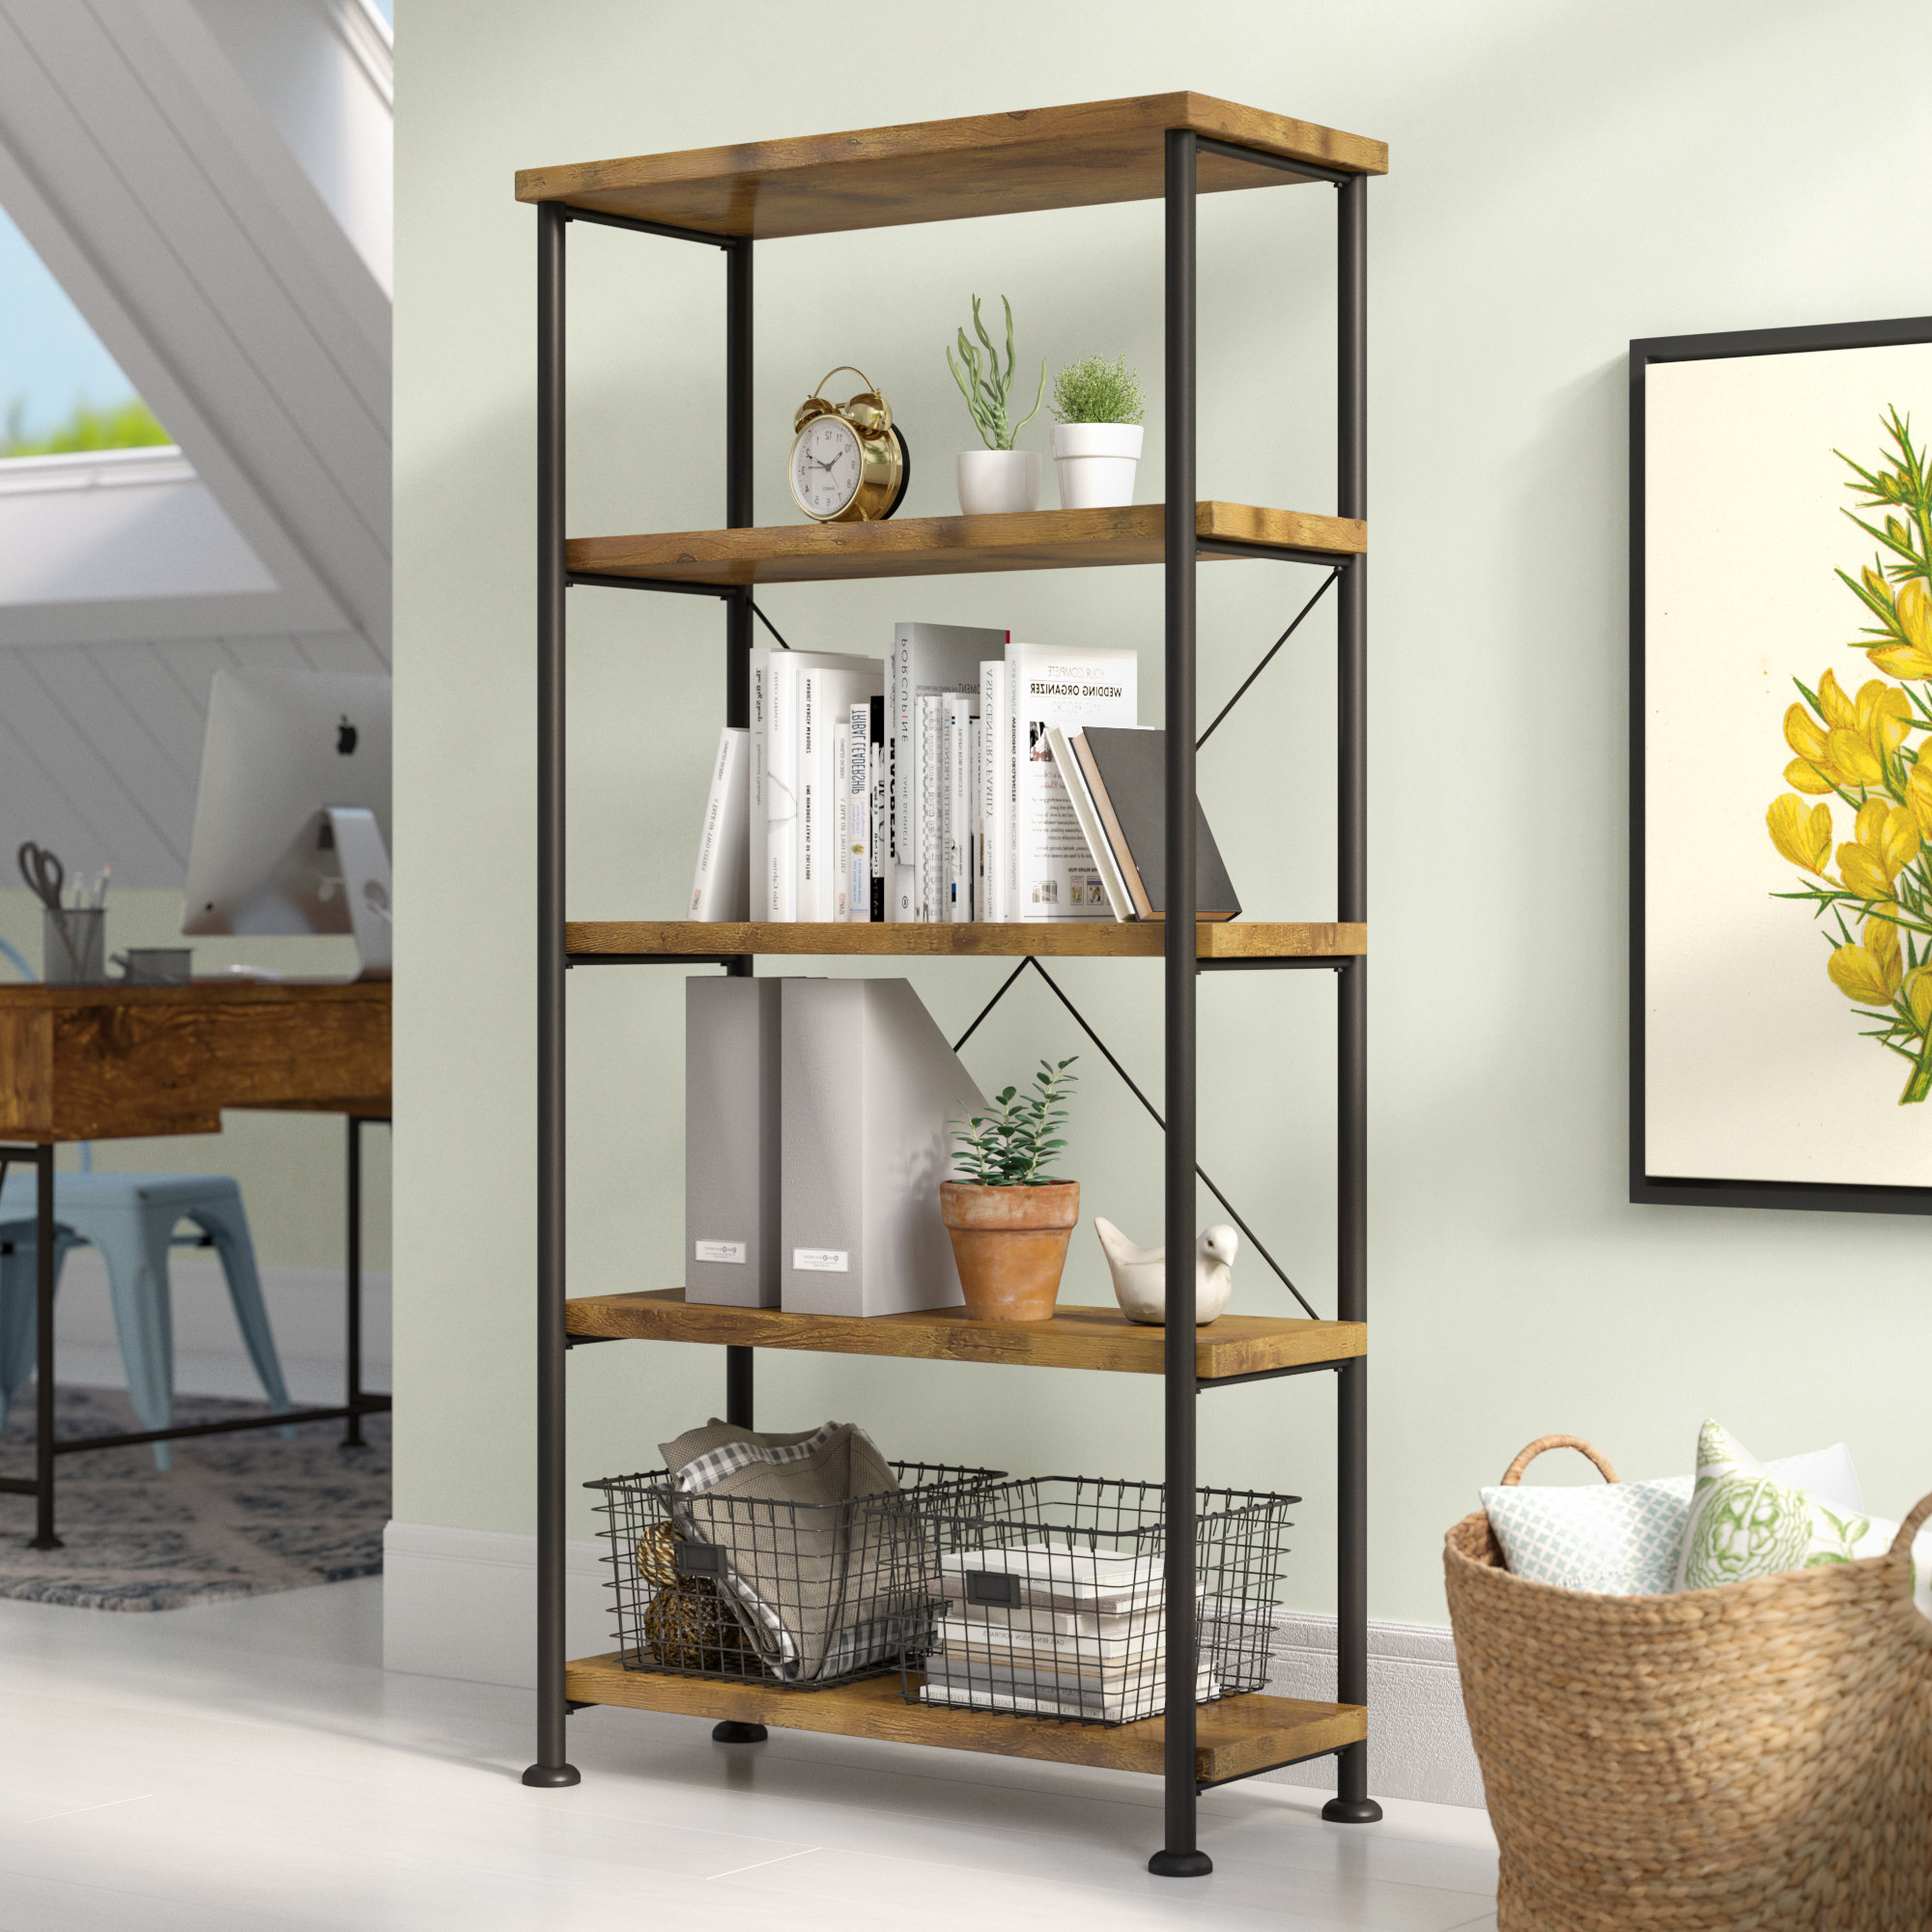 Laurel Foundry Modern Farmhouse Epineux Etagere Bookcase Regarding 2020 Cecelia Etagere Bookcases (View 5 of 20)